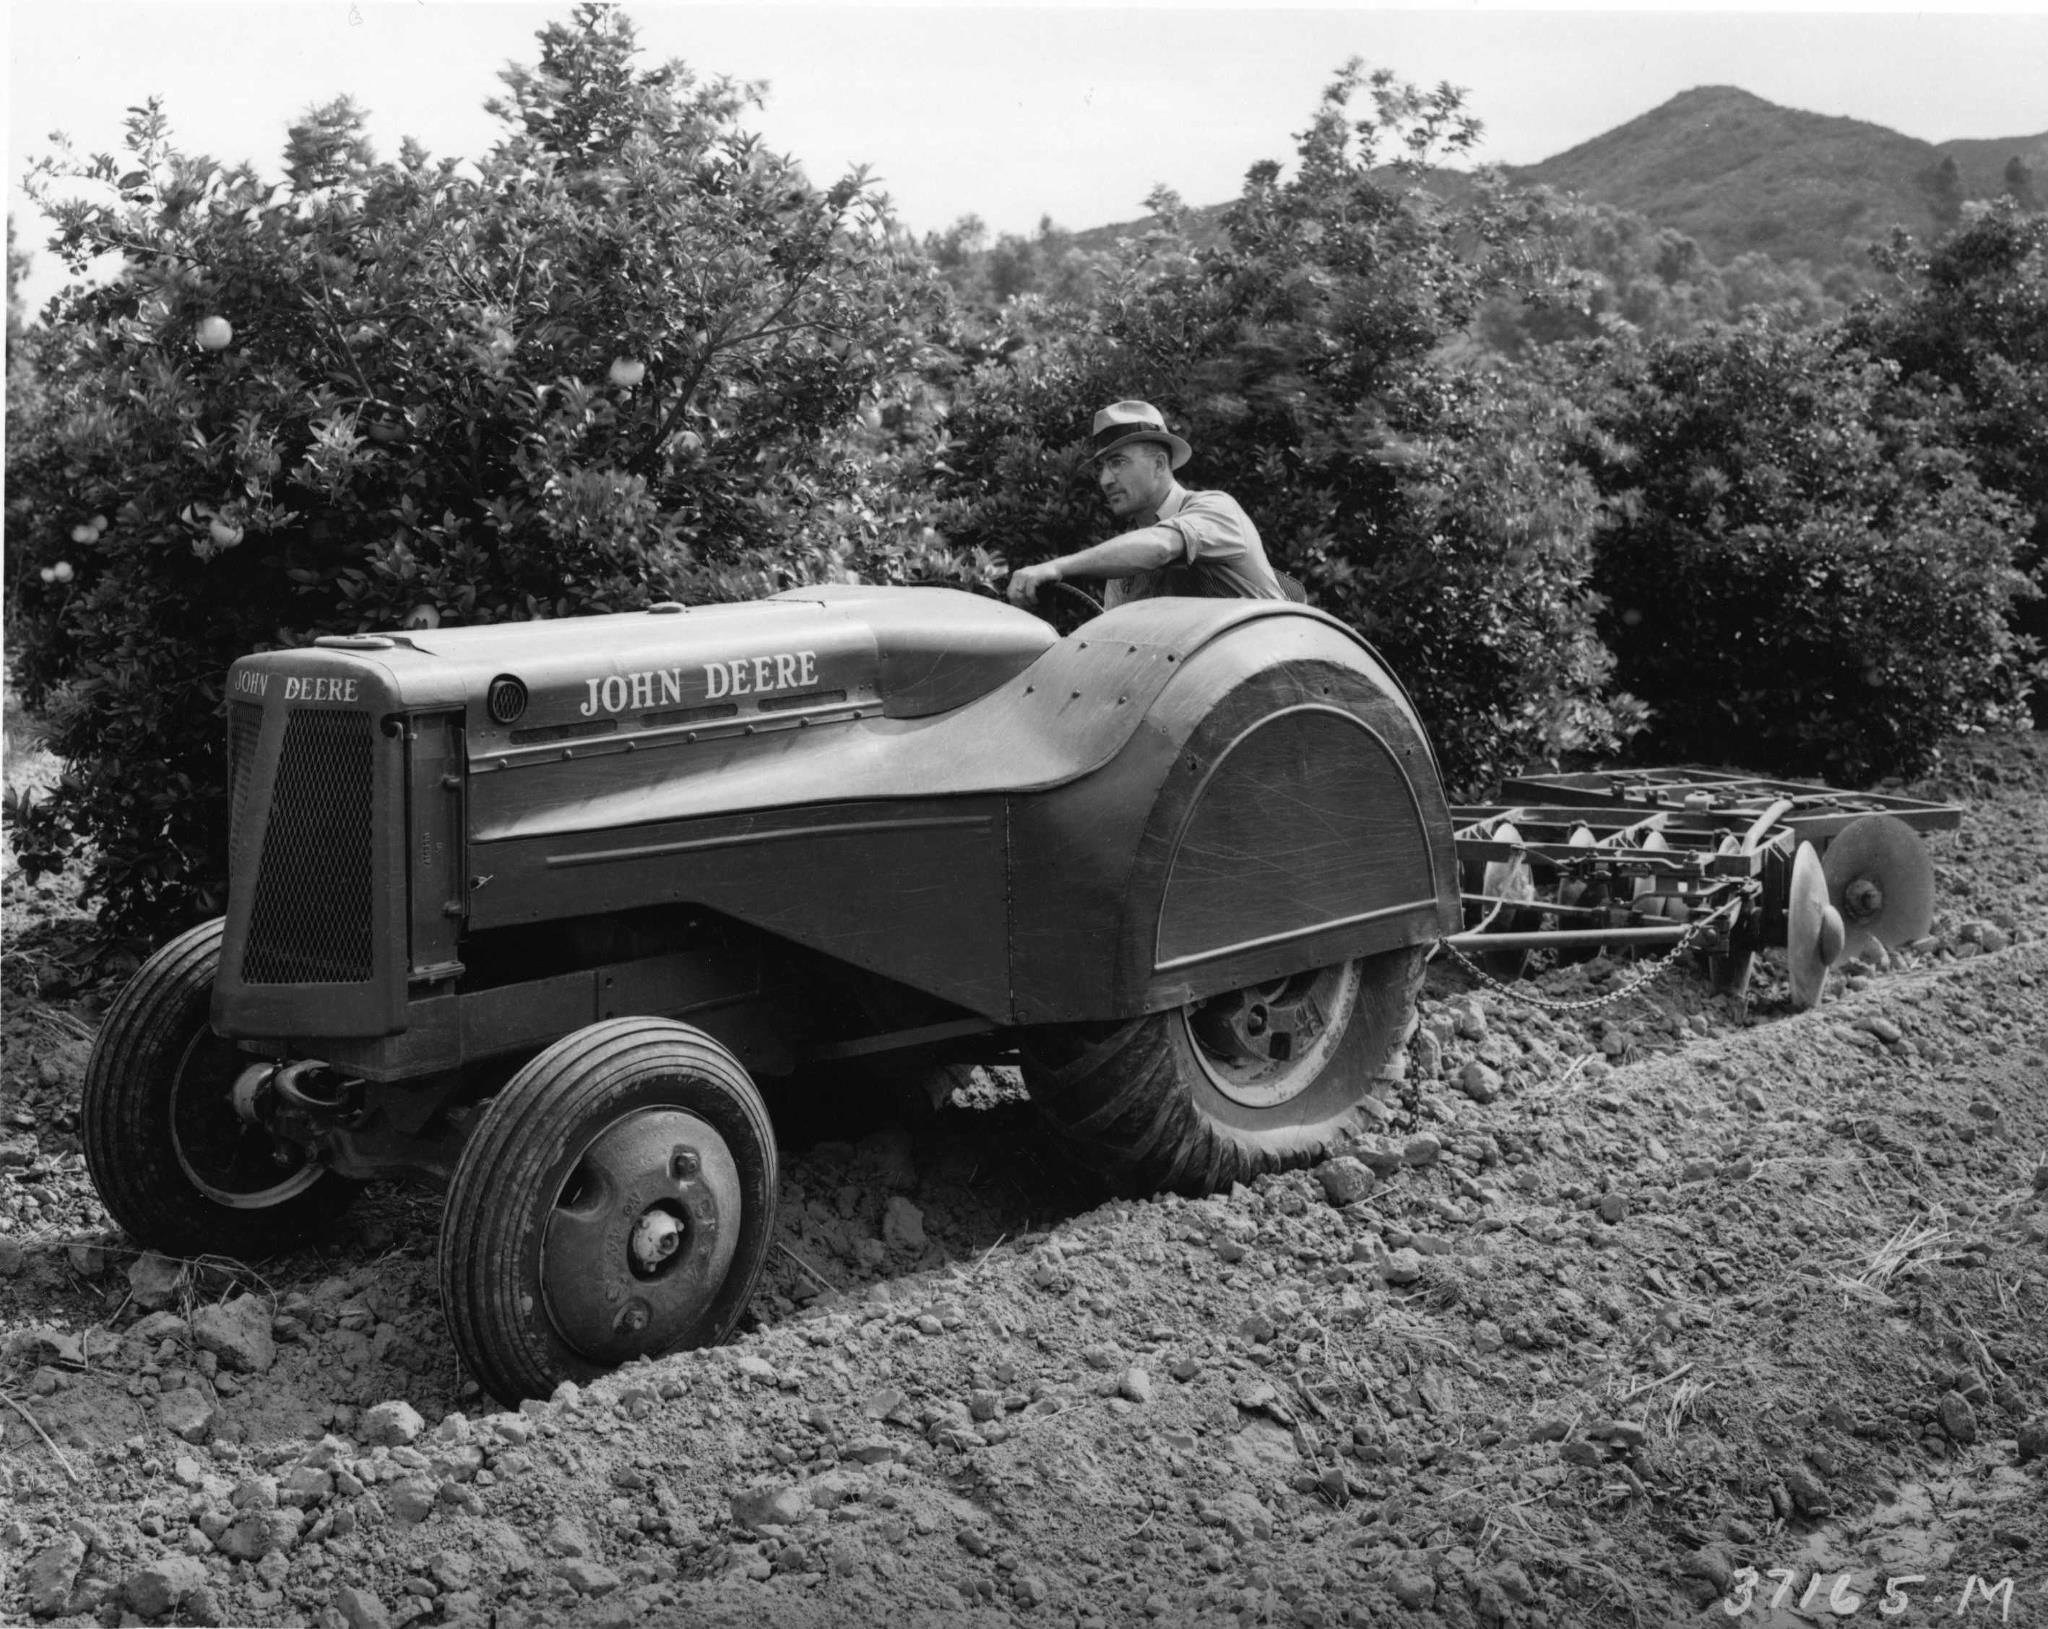 Ford Orchard Tractor : Orchard tractor john deere pinterest